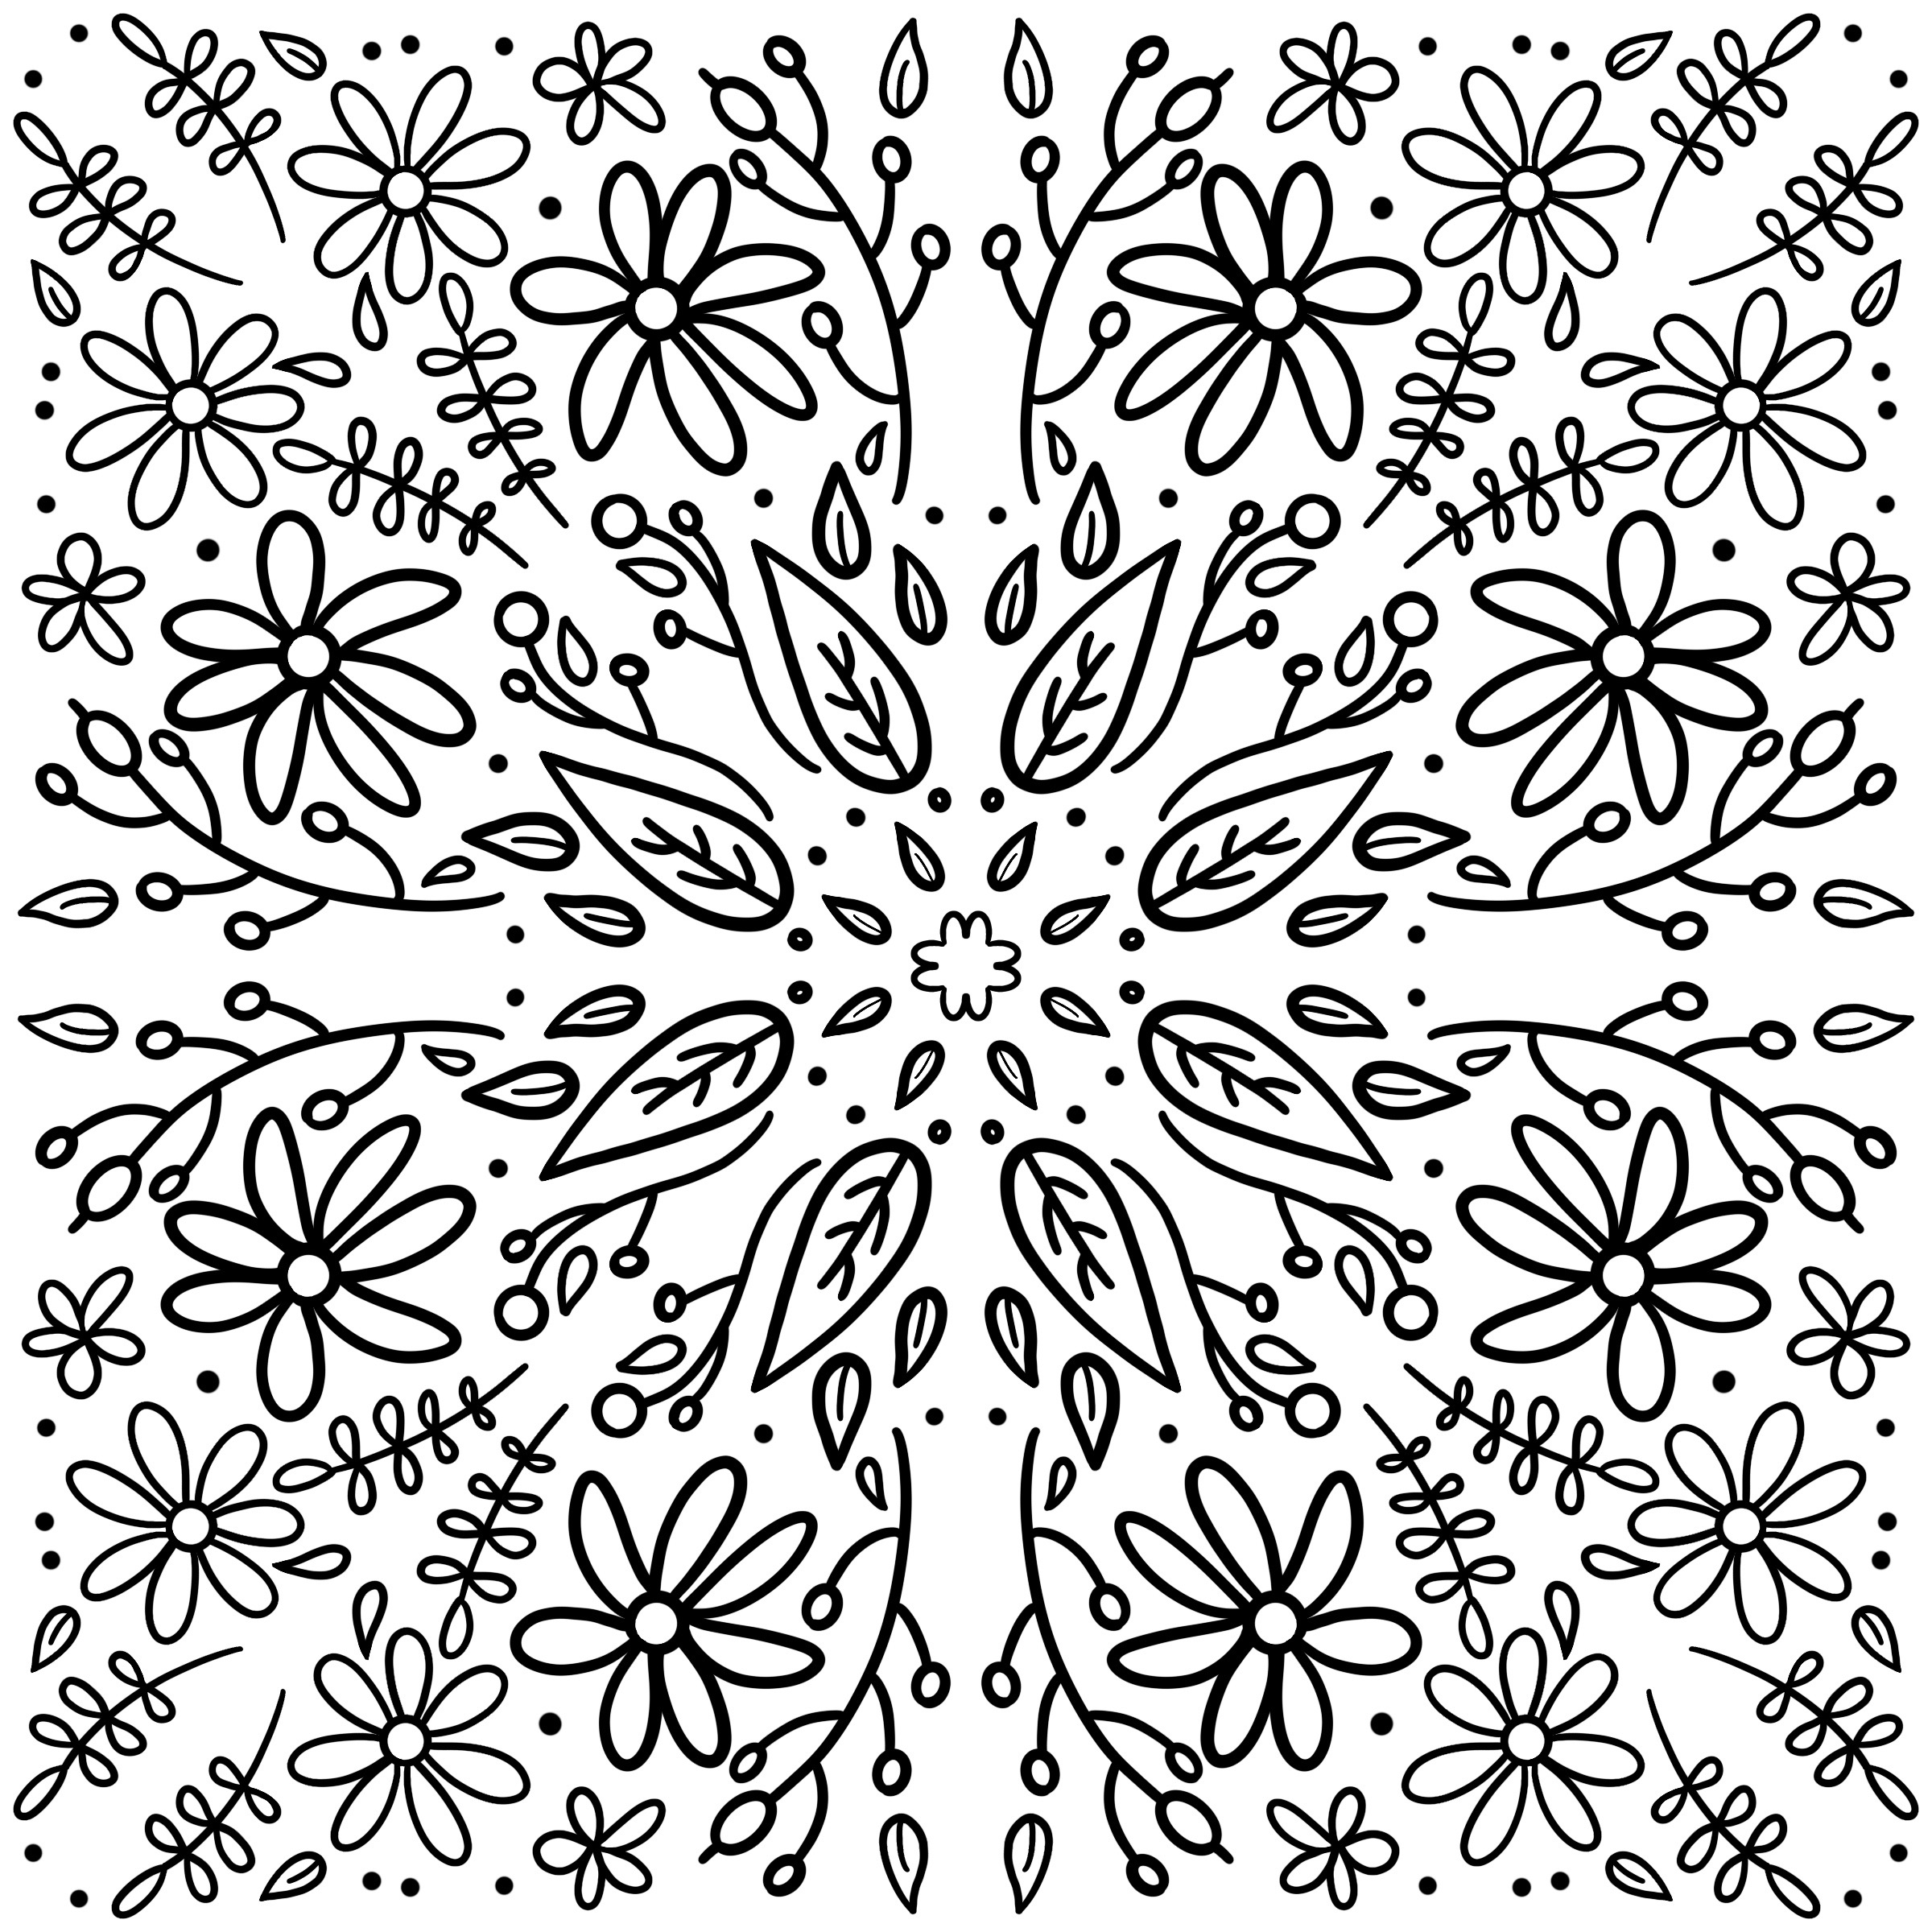 Leaves and flowers colouring page